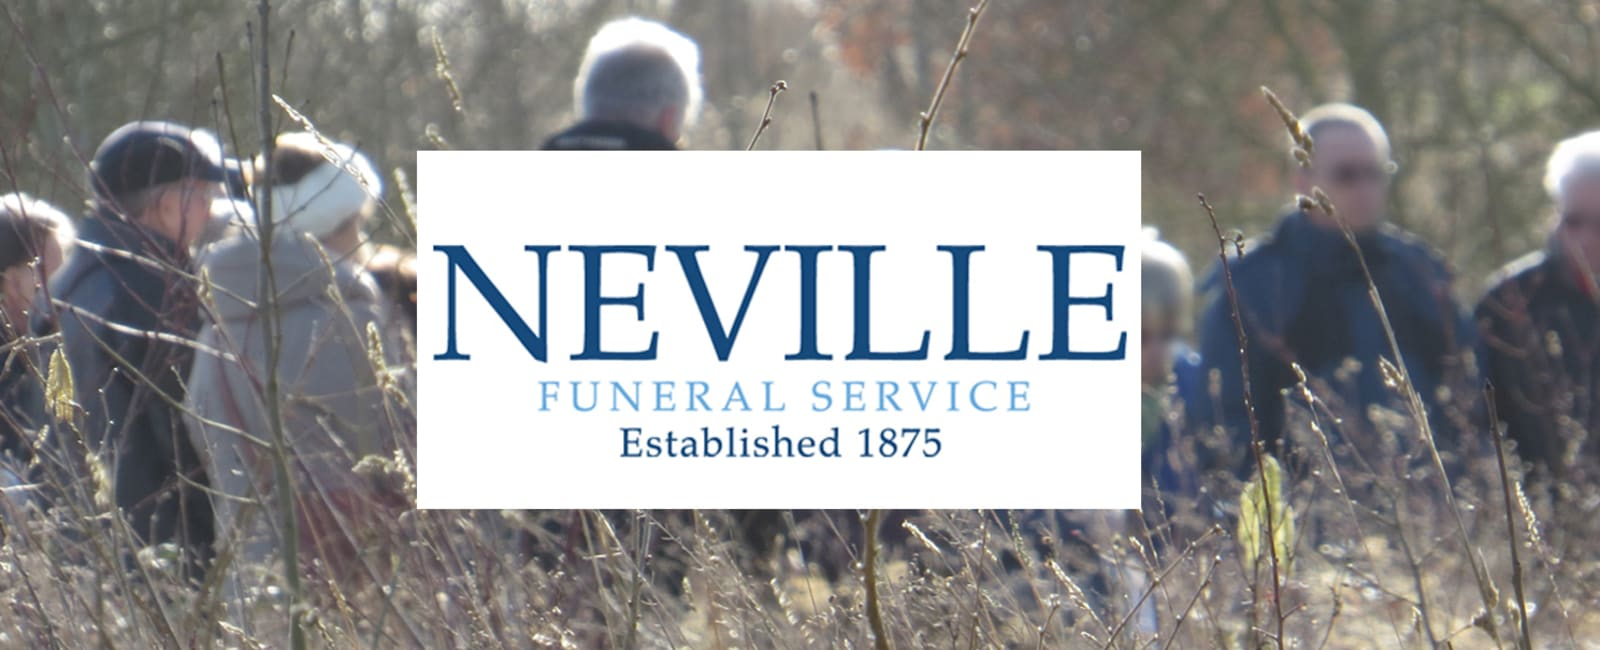 Neville tree planting with logo in front